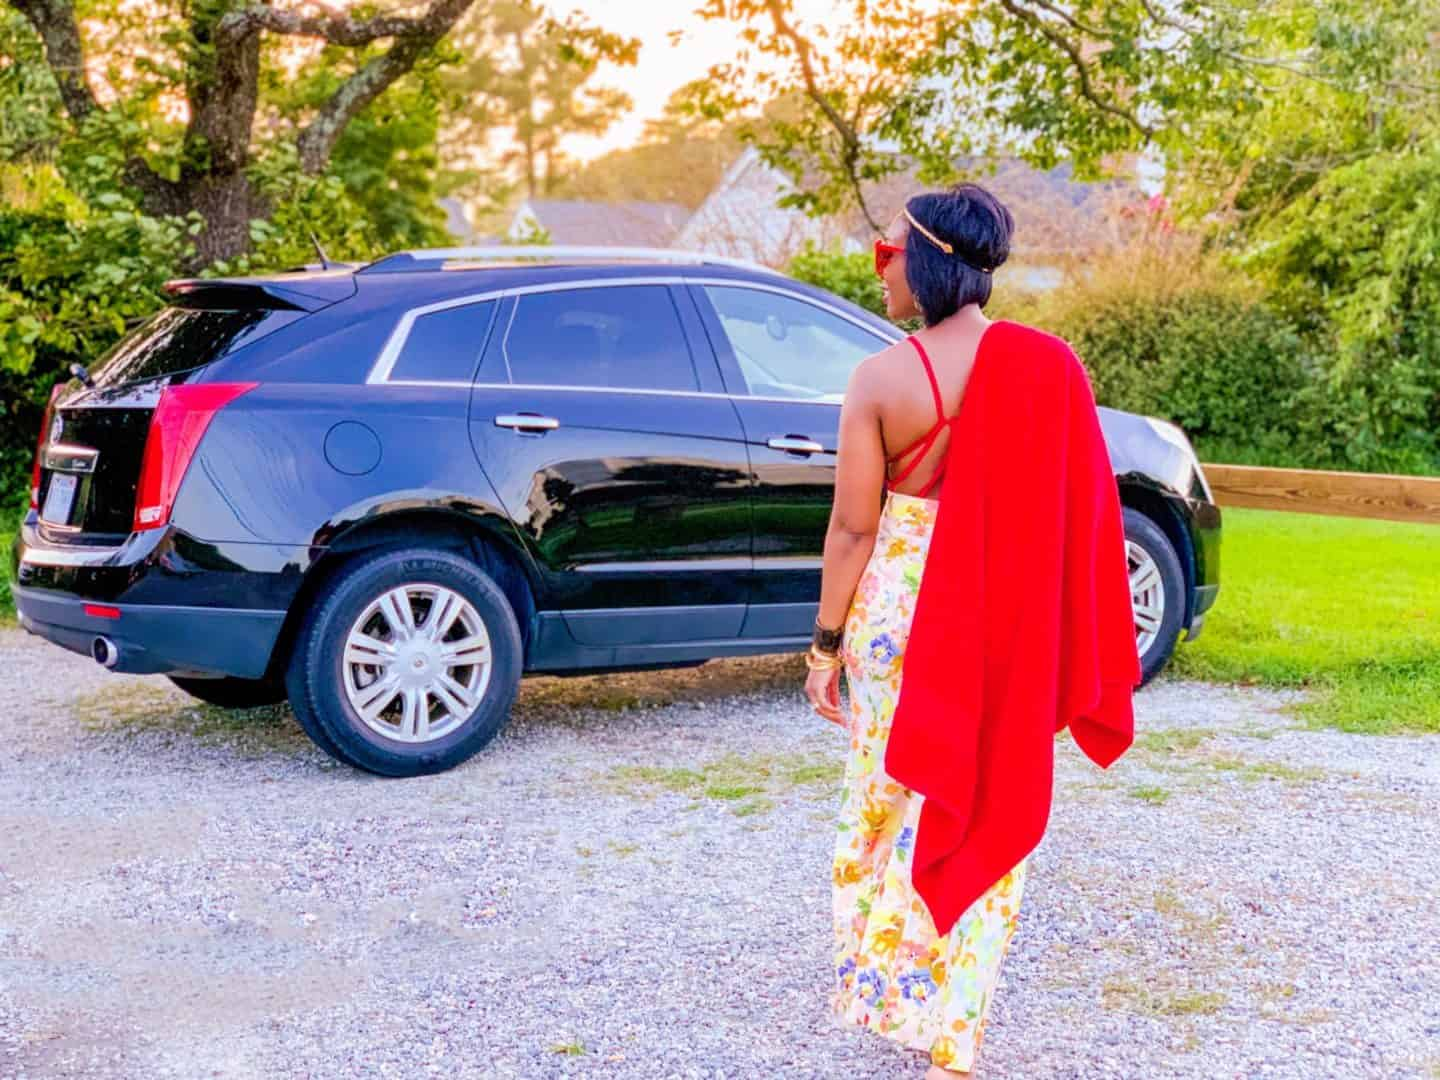 Shaunda Necole Work Hard & Play Harder On Holiday Weekends With Cadillac By The Shore In My Flower Power Party Pants